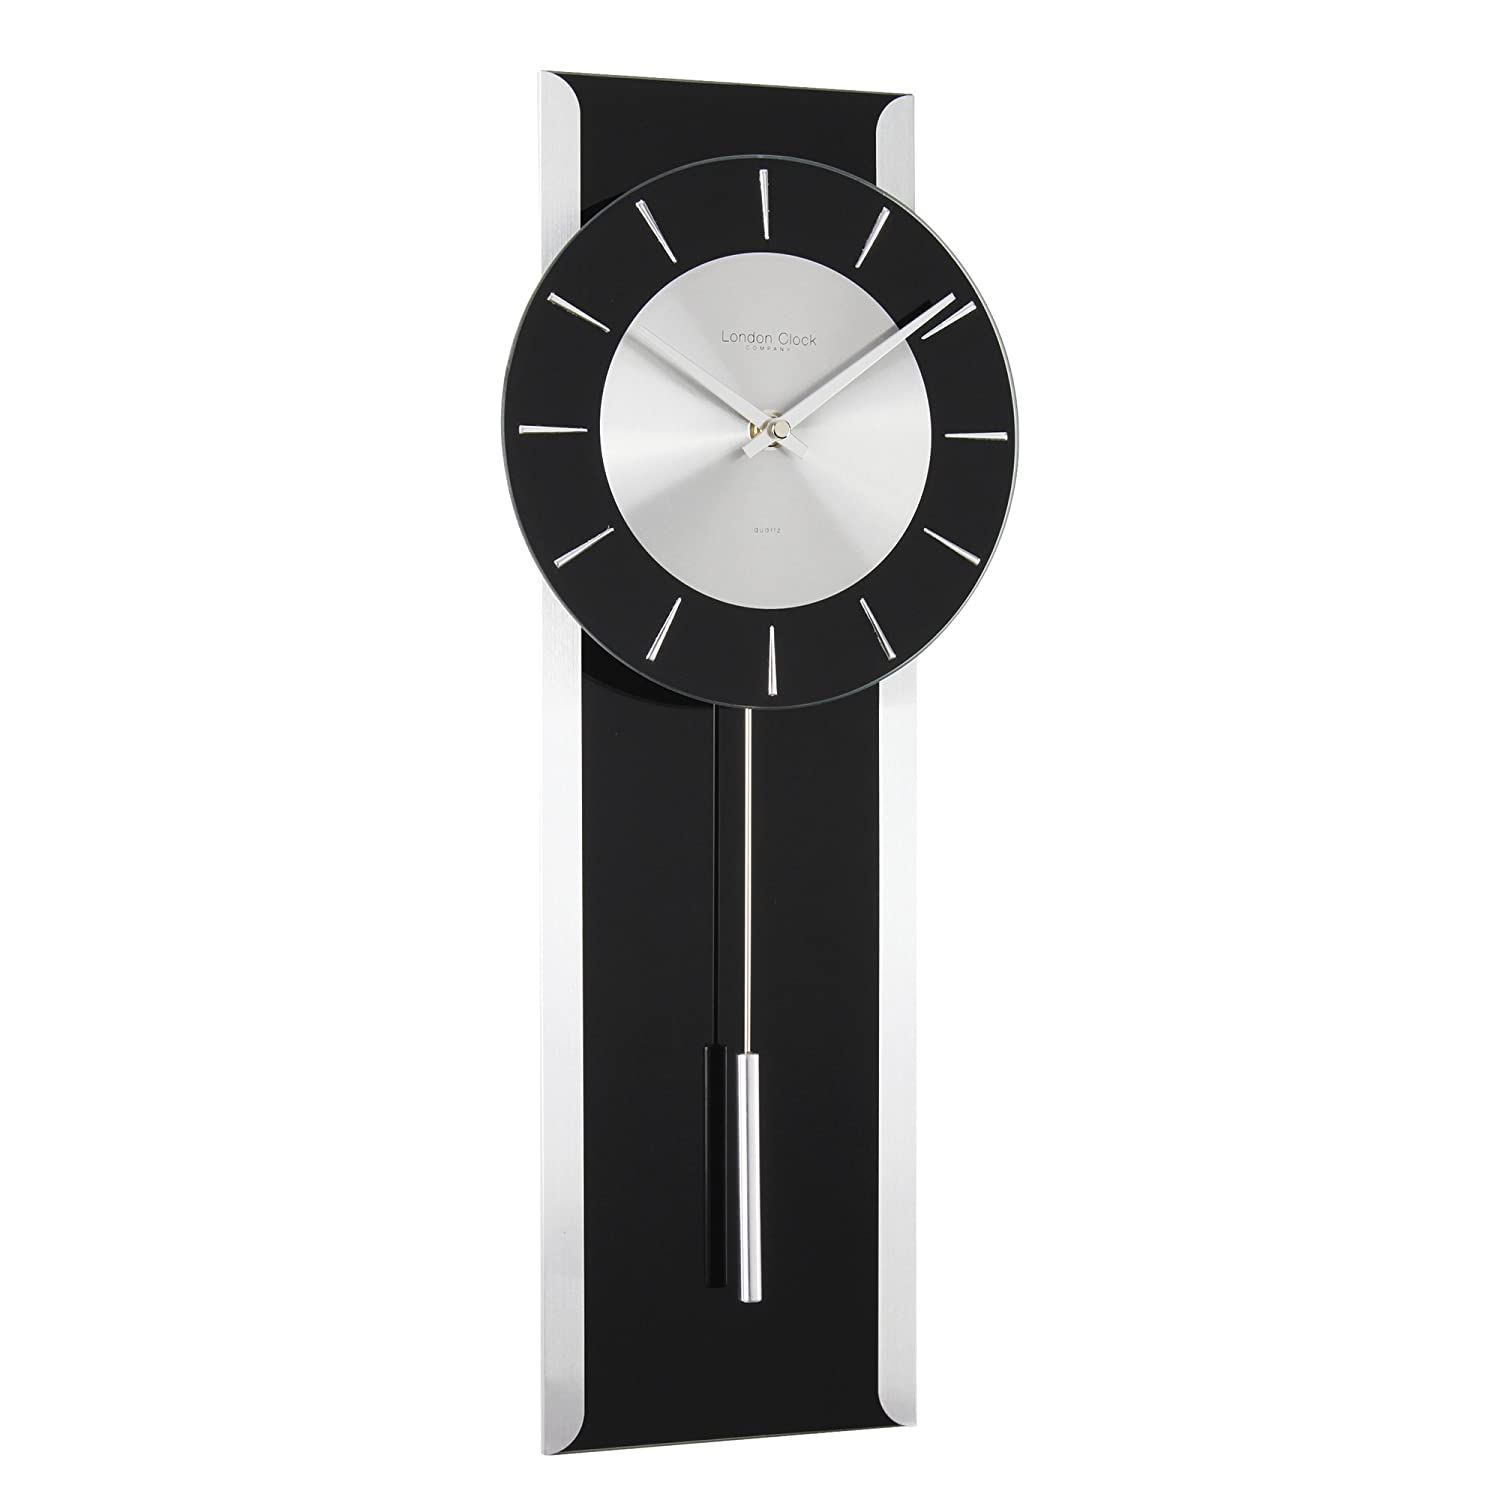 London clock 23128 contemporary black glass pendulum wall london clock 23128 contemporary black glass pendulum wall clock amazon kitchen home amipublicfo Choice Image